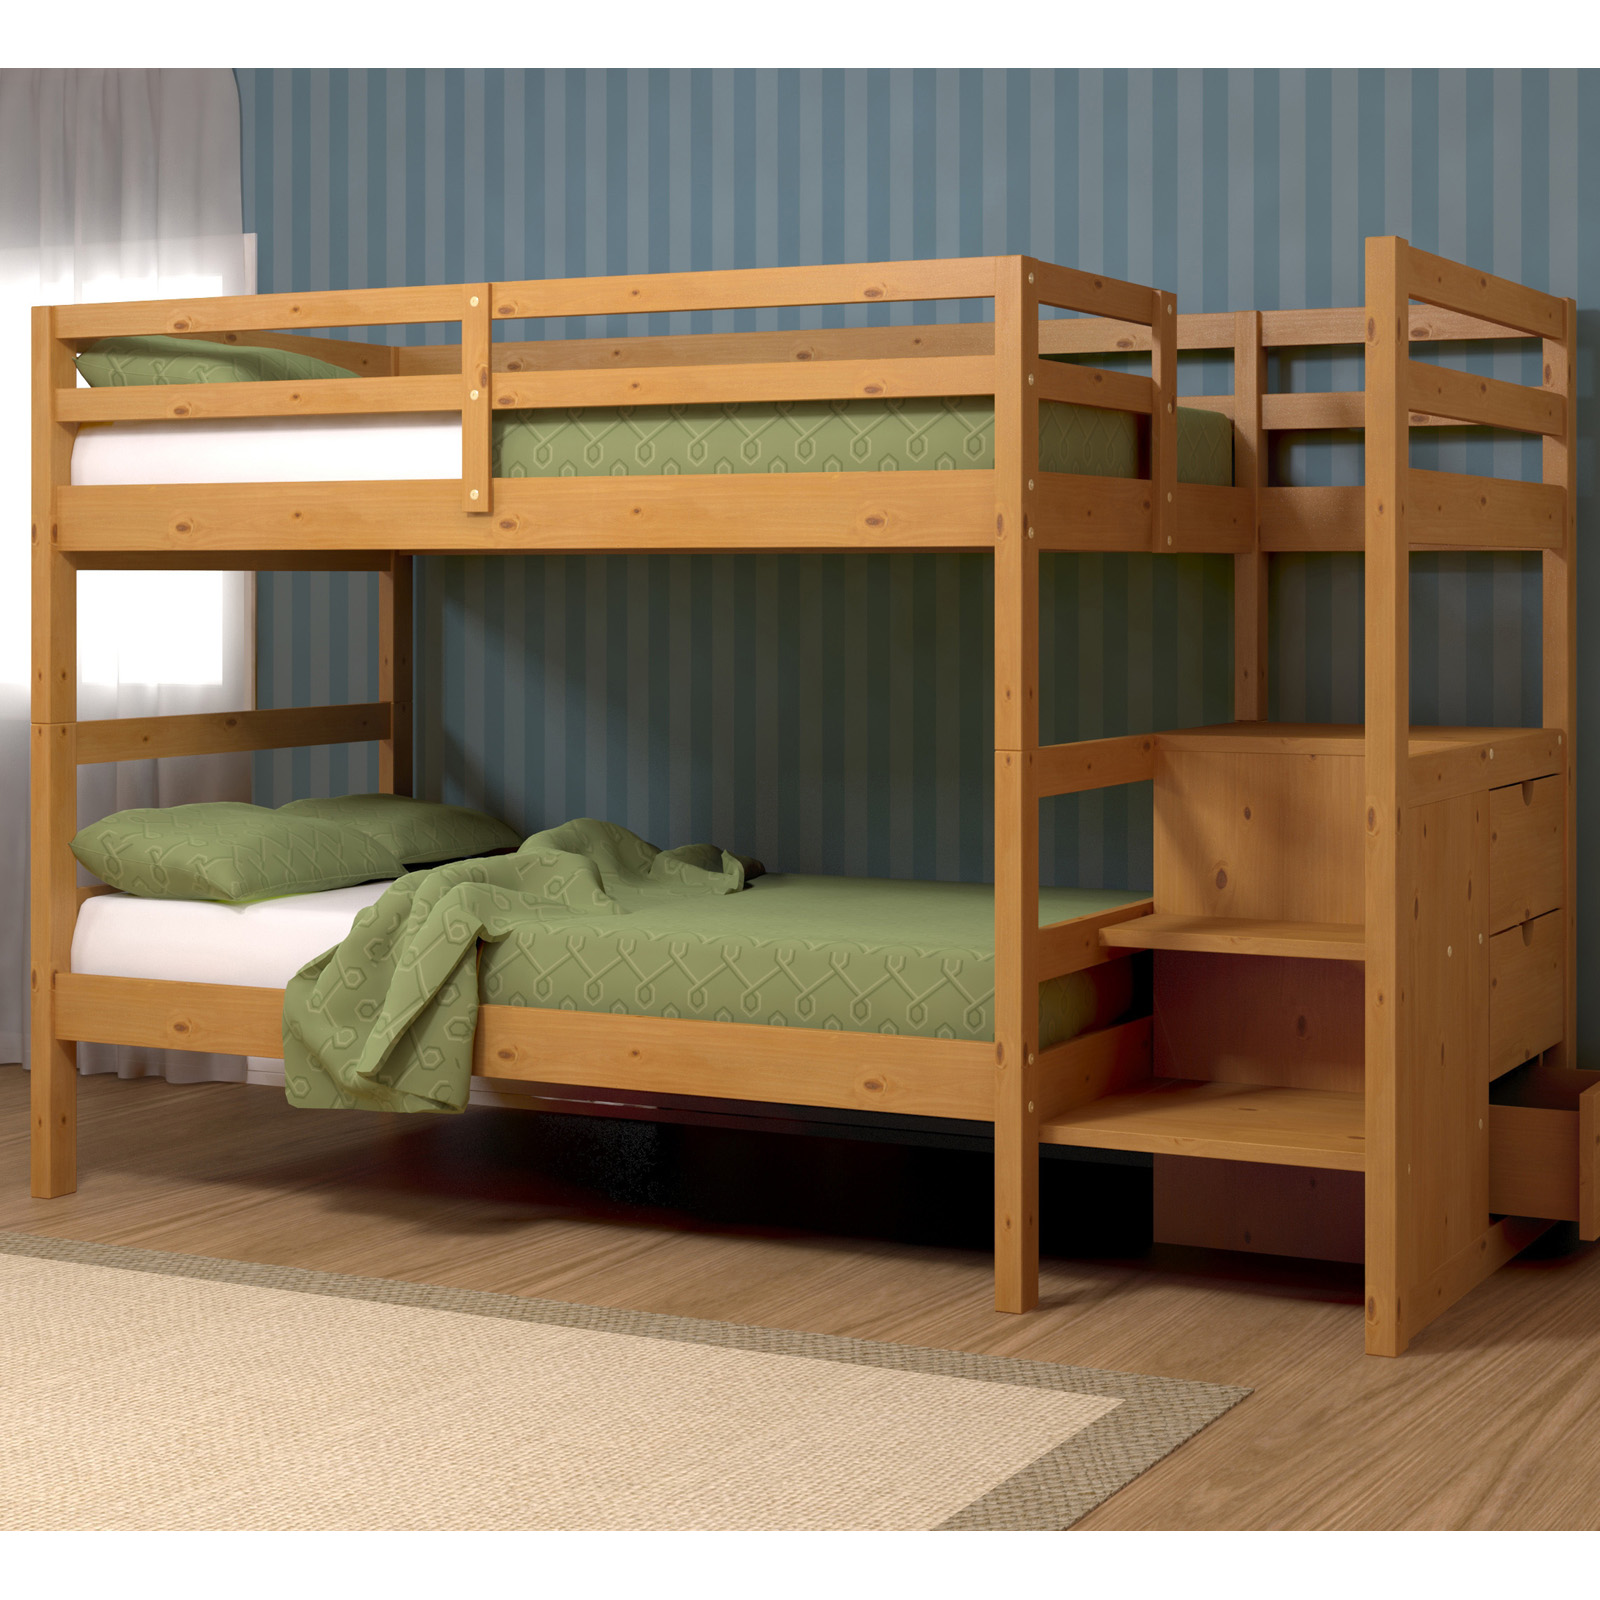 Bunk Bed Melbourne Melbourne Honey Pine Twin Over Twin Stairway Bunk Bed With